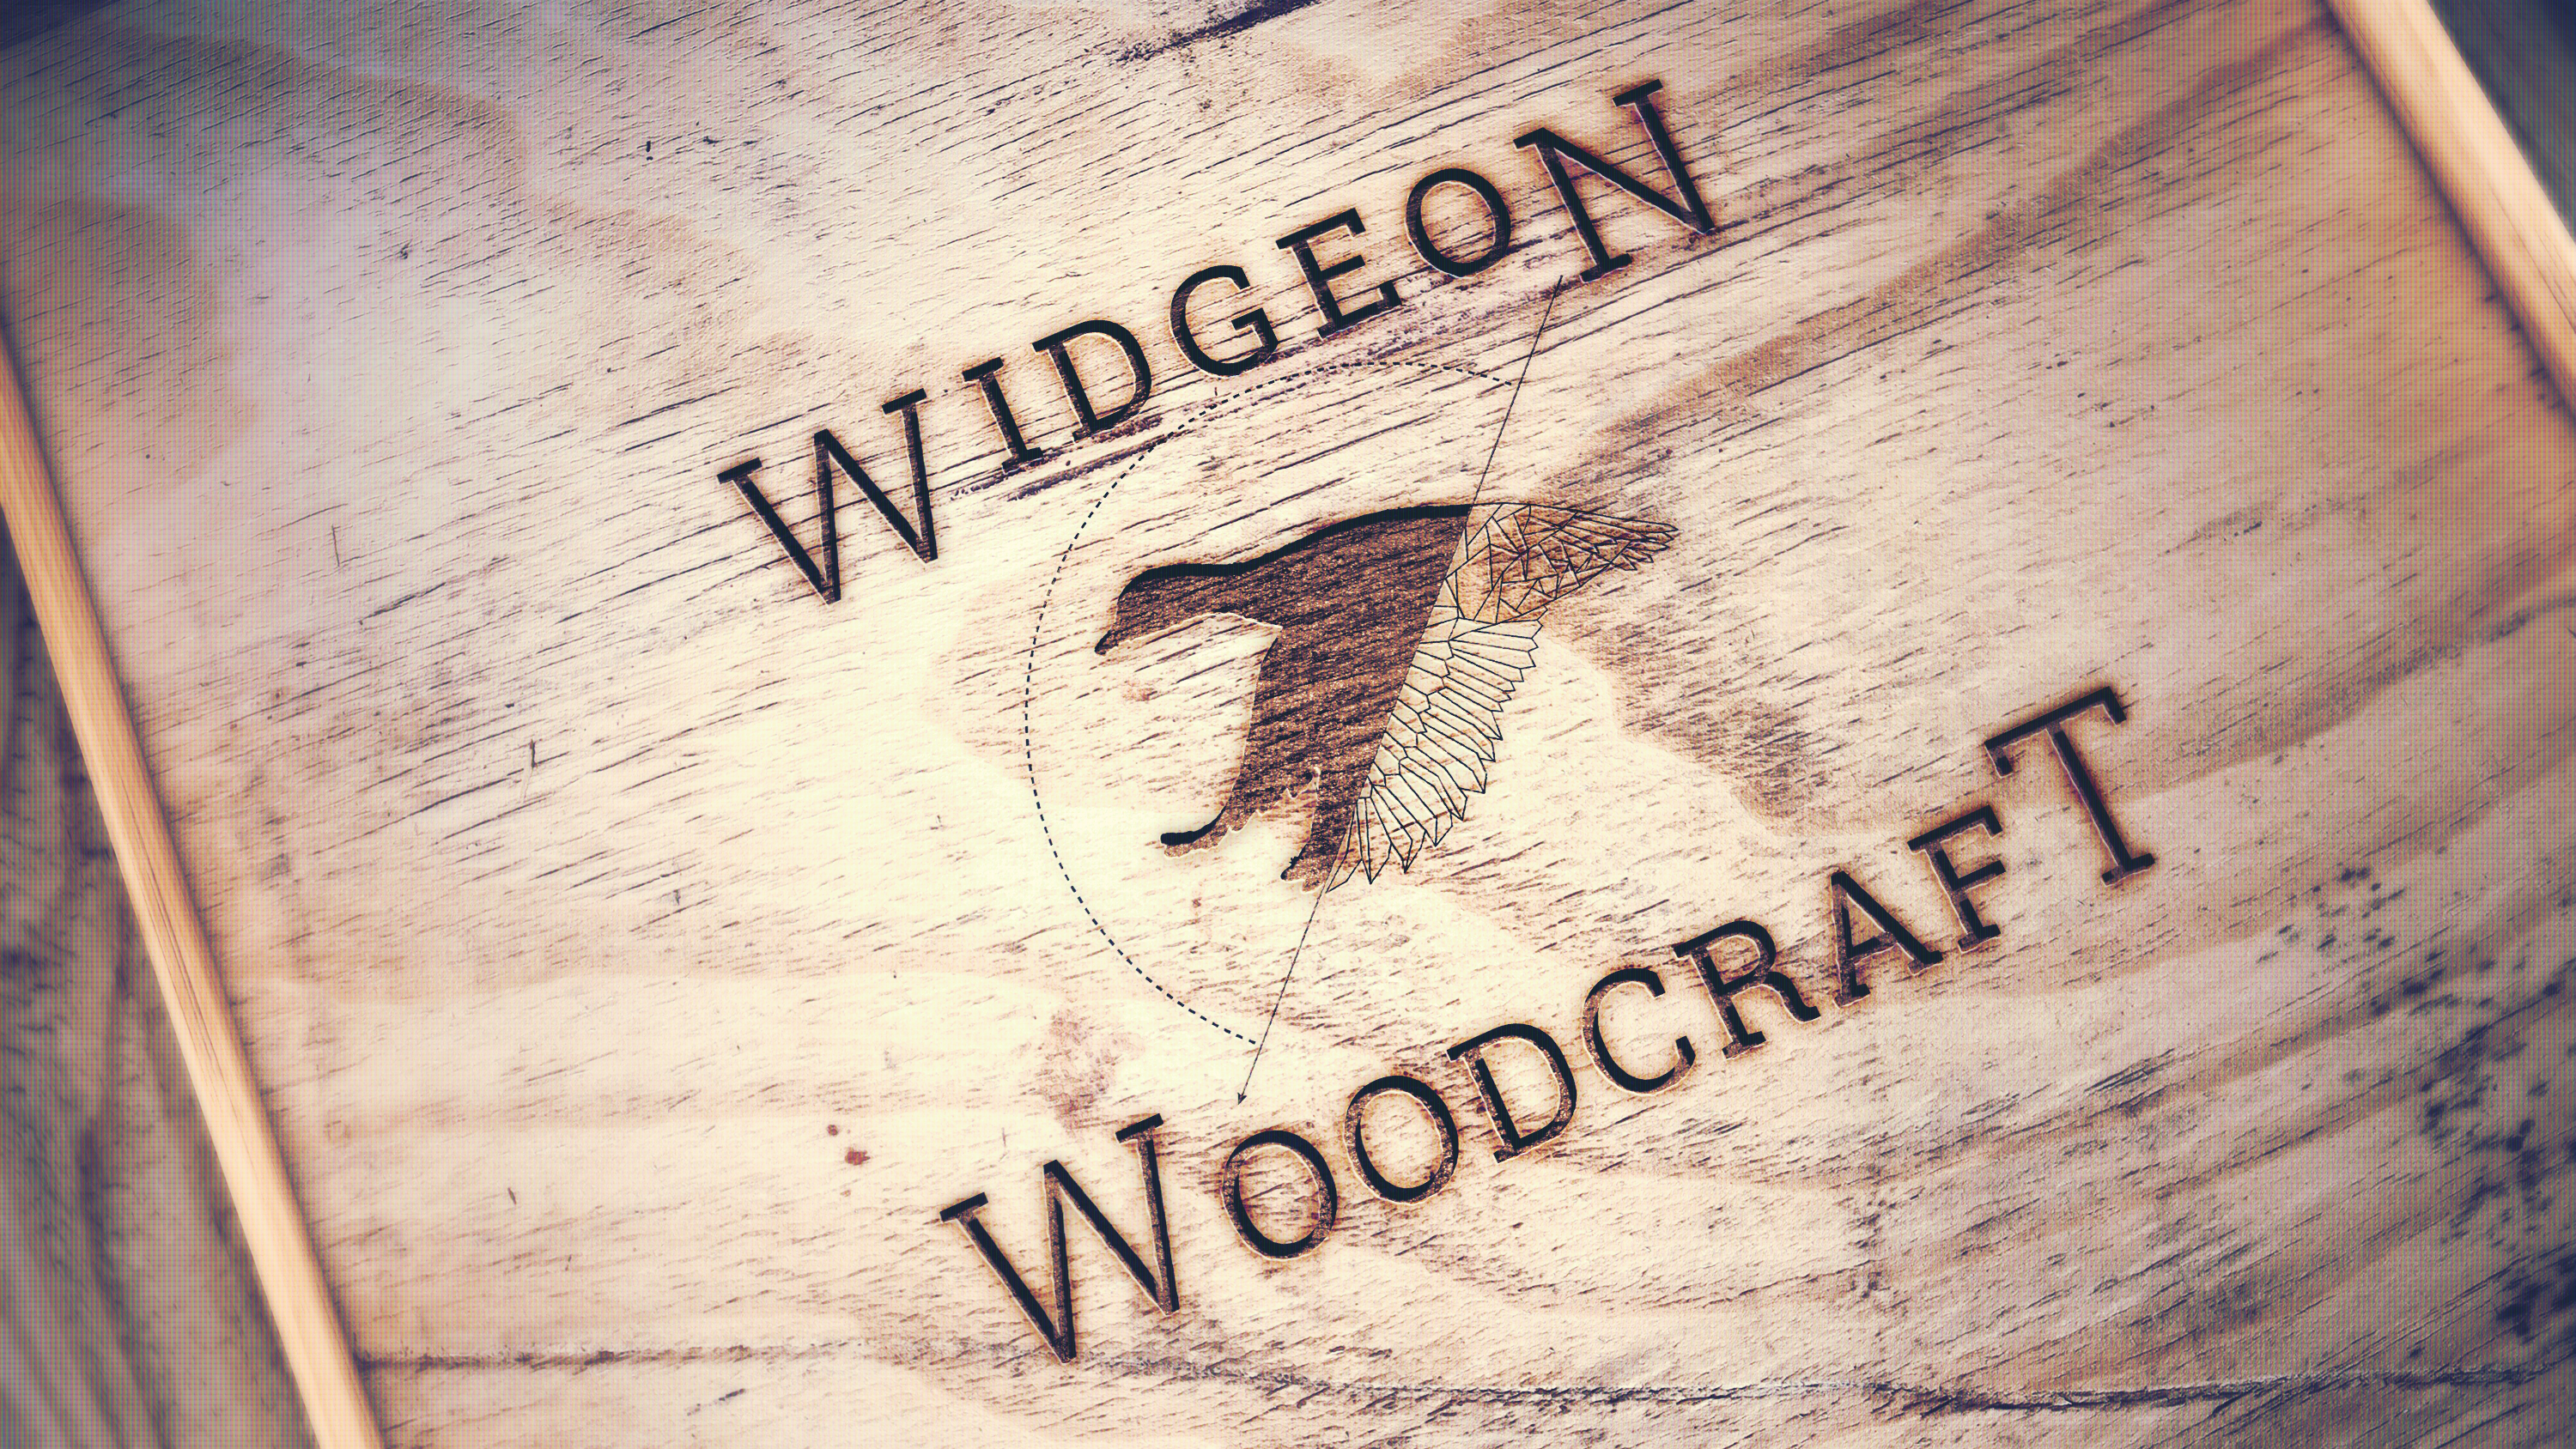 Widgeon Woodcraft